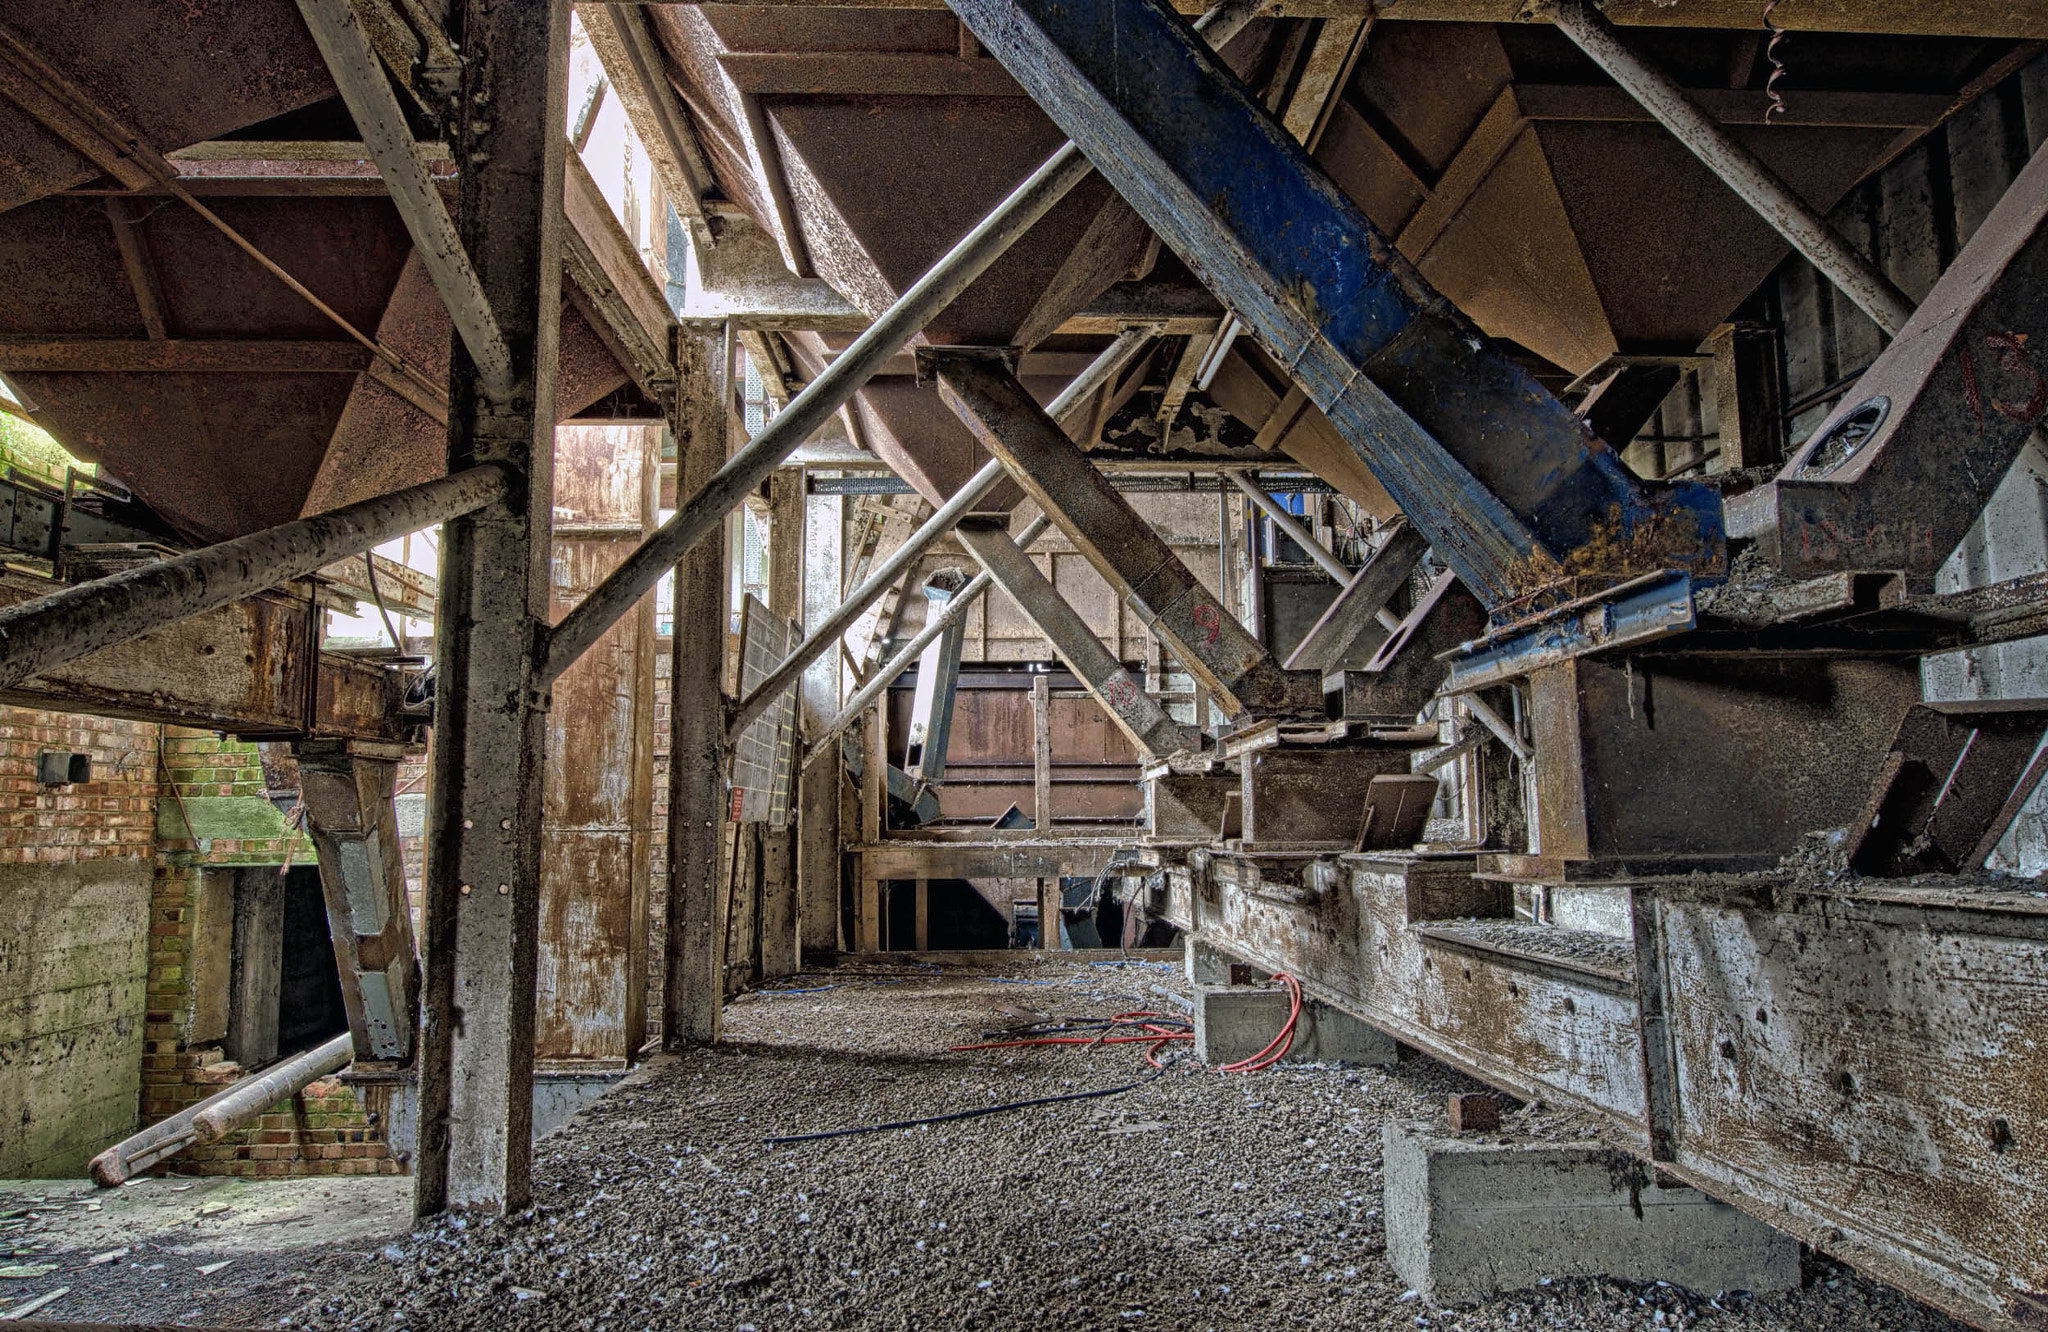 Photograph Old Mill by Pawel Rozenek on 500px